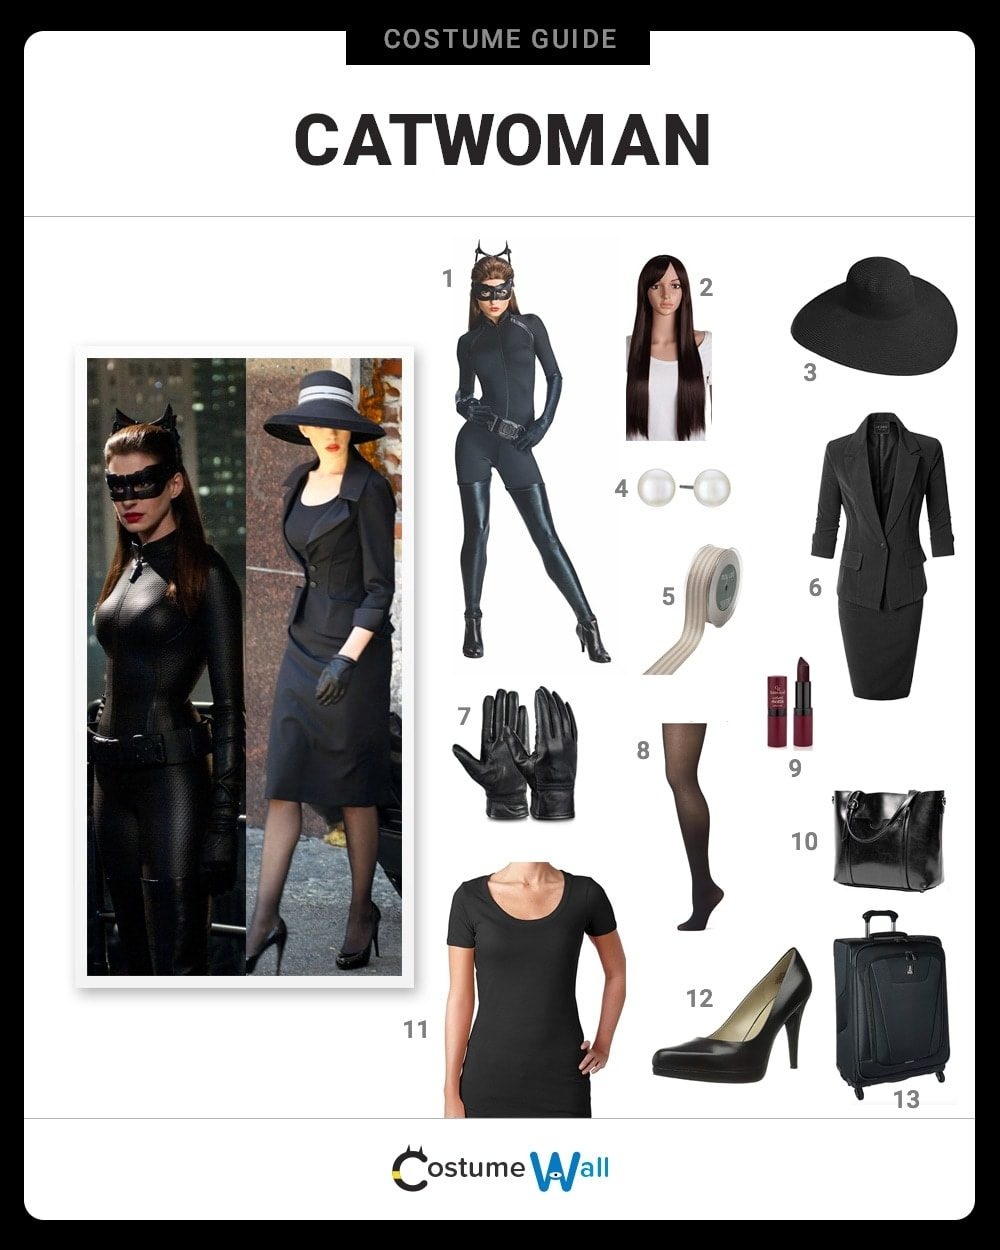 Catwoman Costume Guide